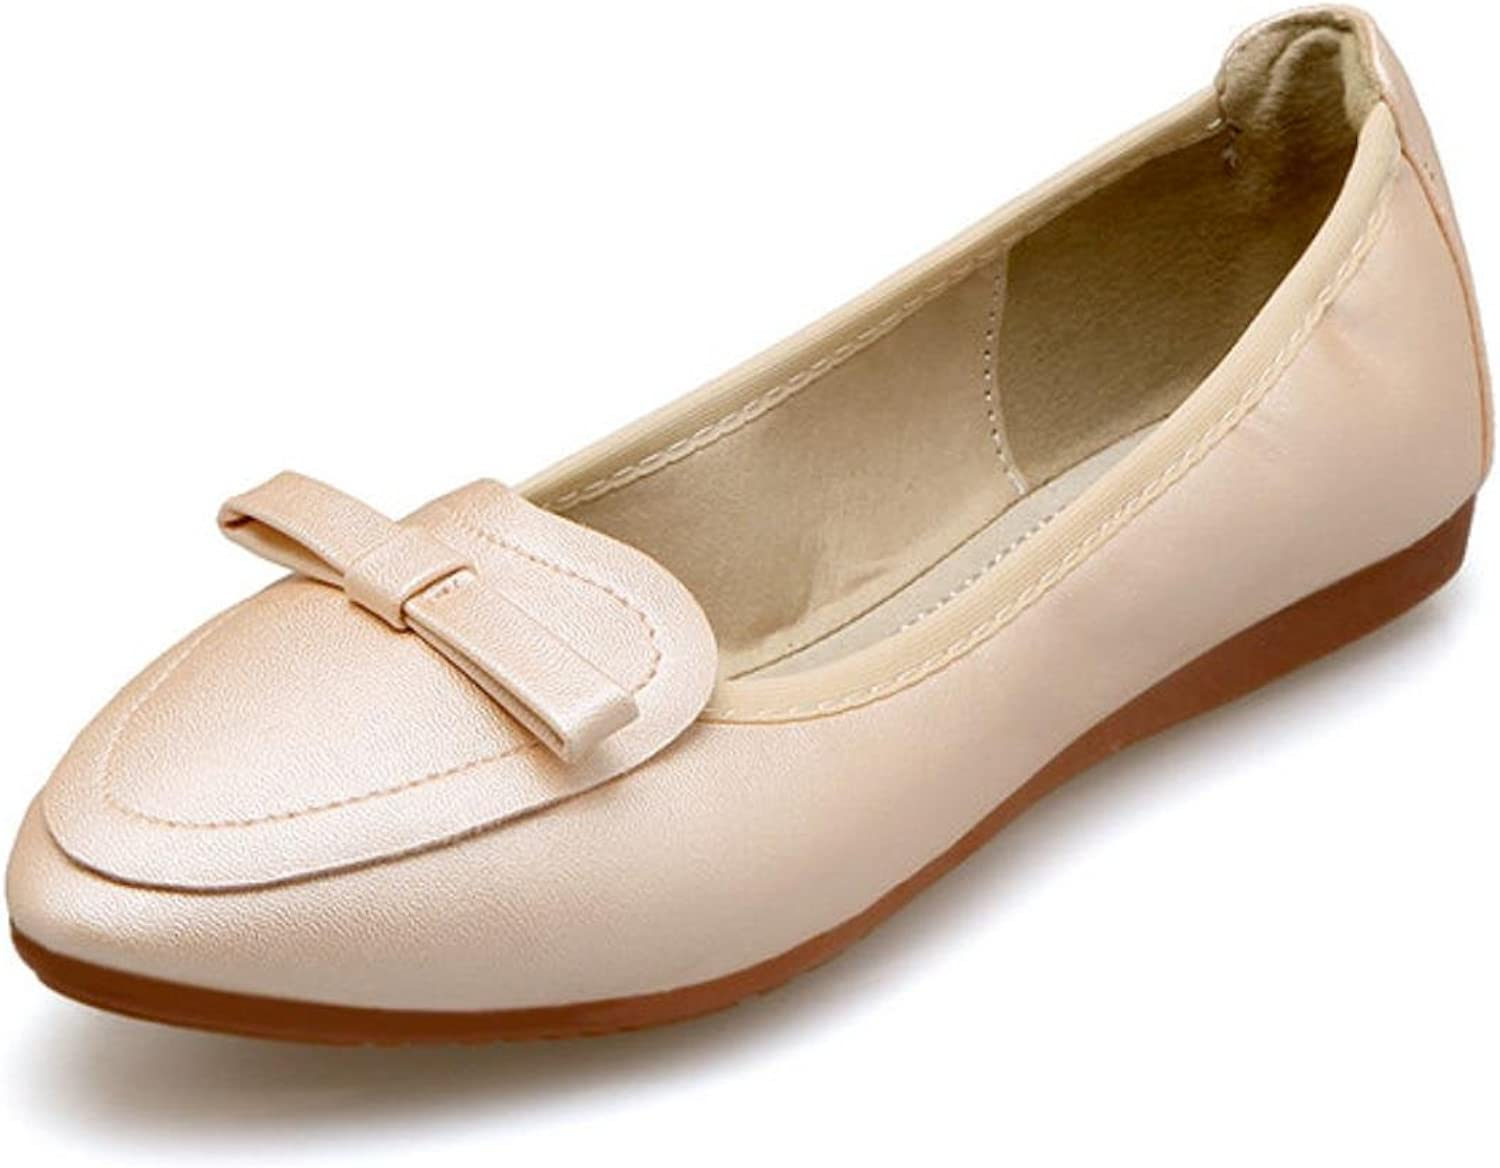 Fletiter Women Flat shoes New Bow Tie Leather Casual shoes for Woman Soft Ballet Pregnant women